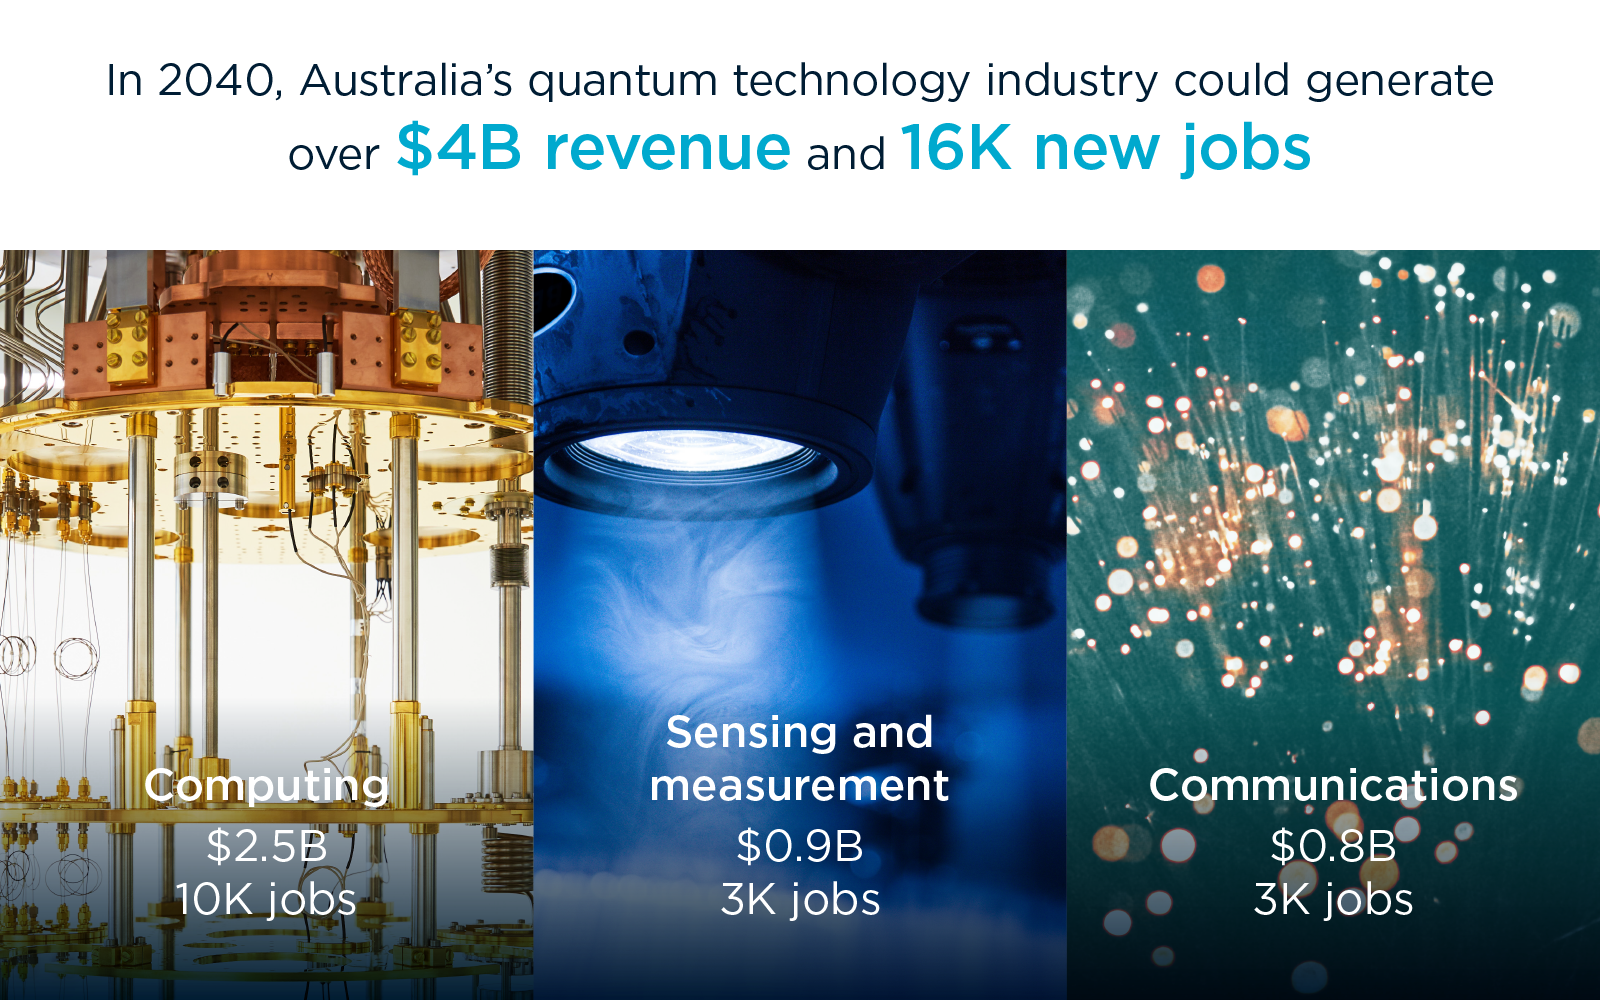 In 2040, Australia's quantum technology industry could generate over $4B revenue and 16K new jobs